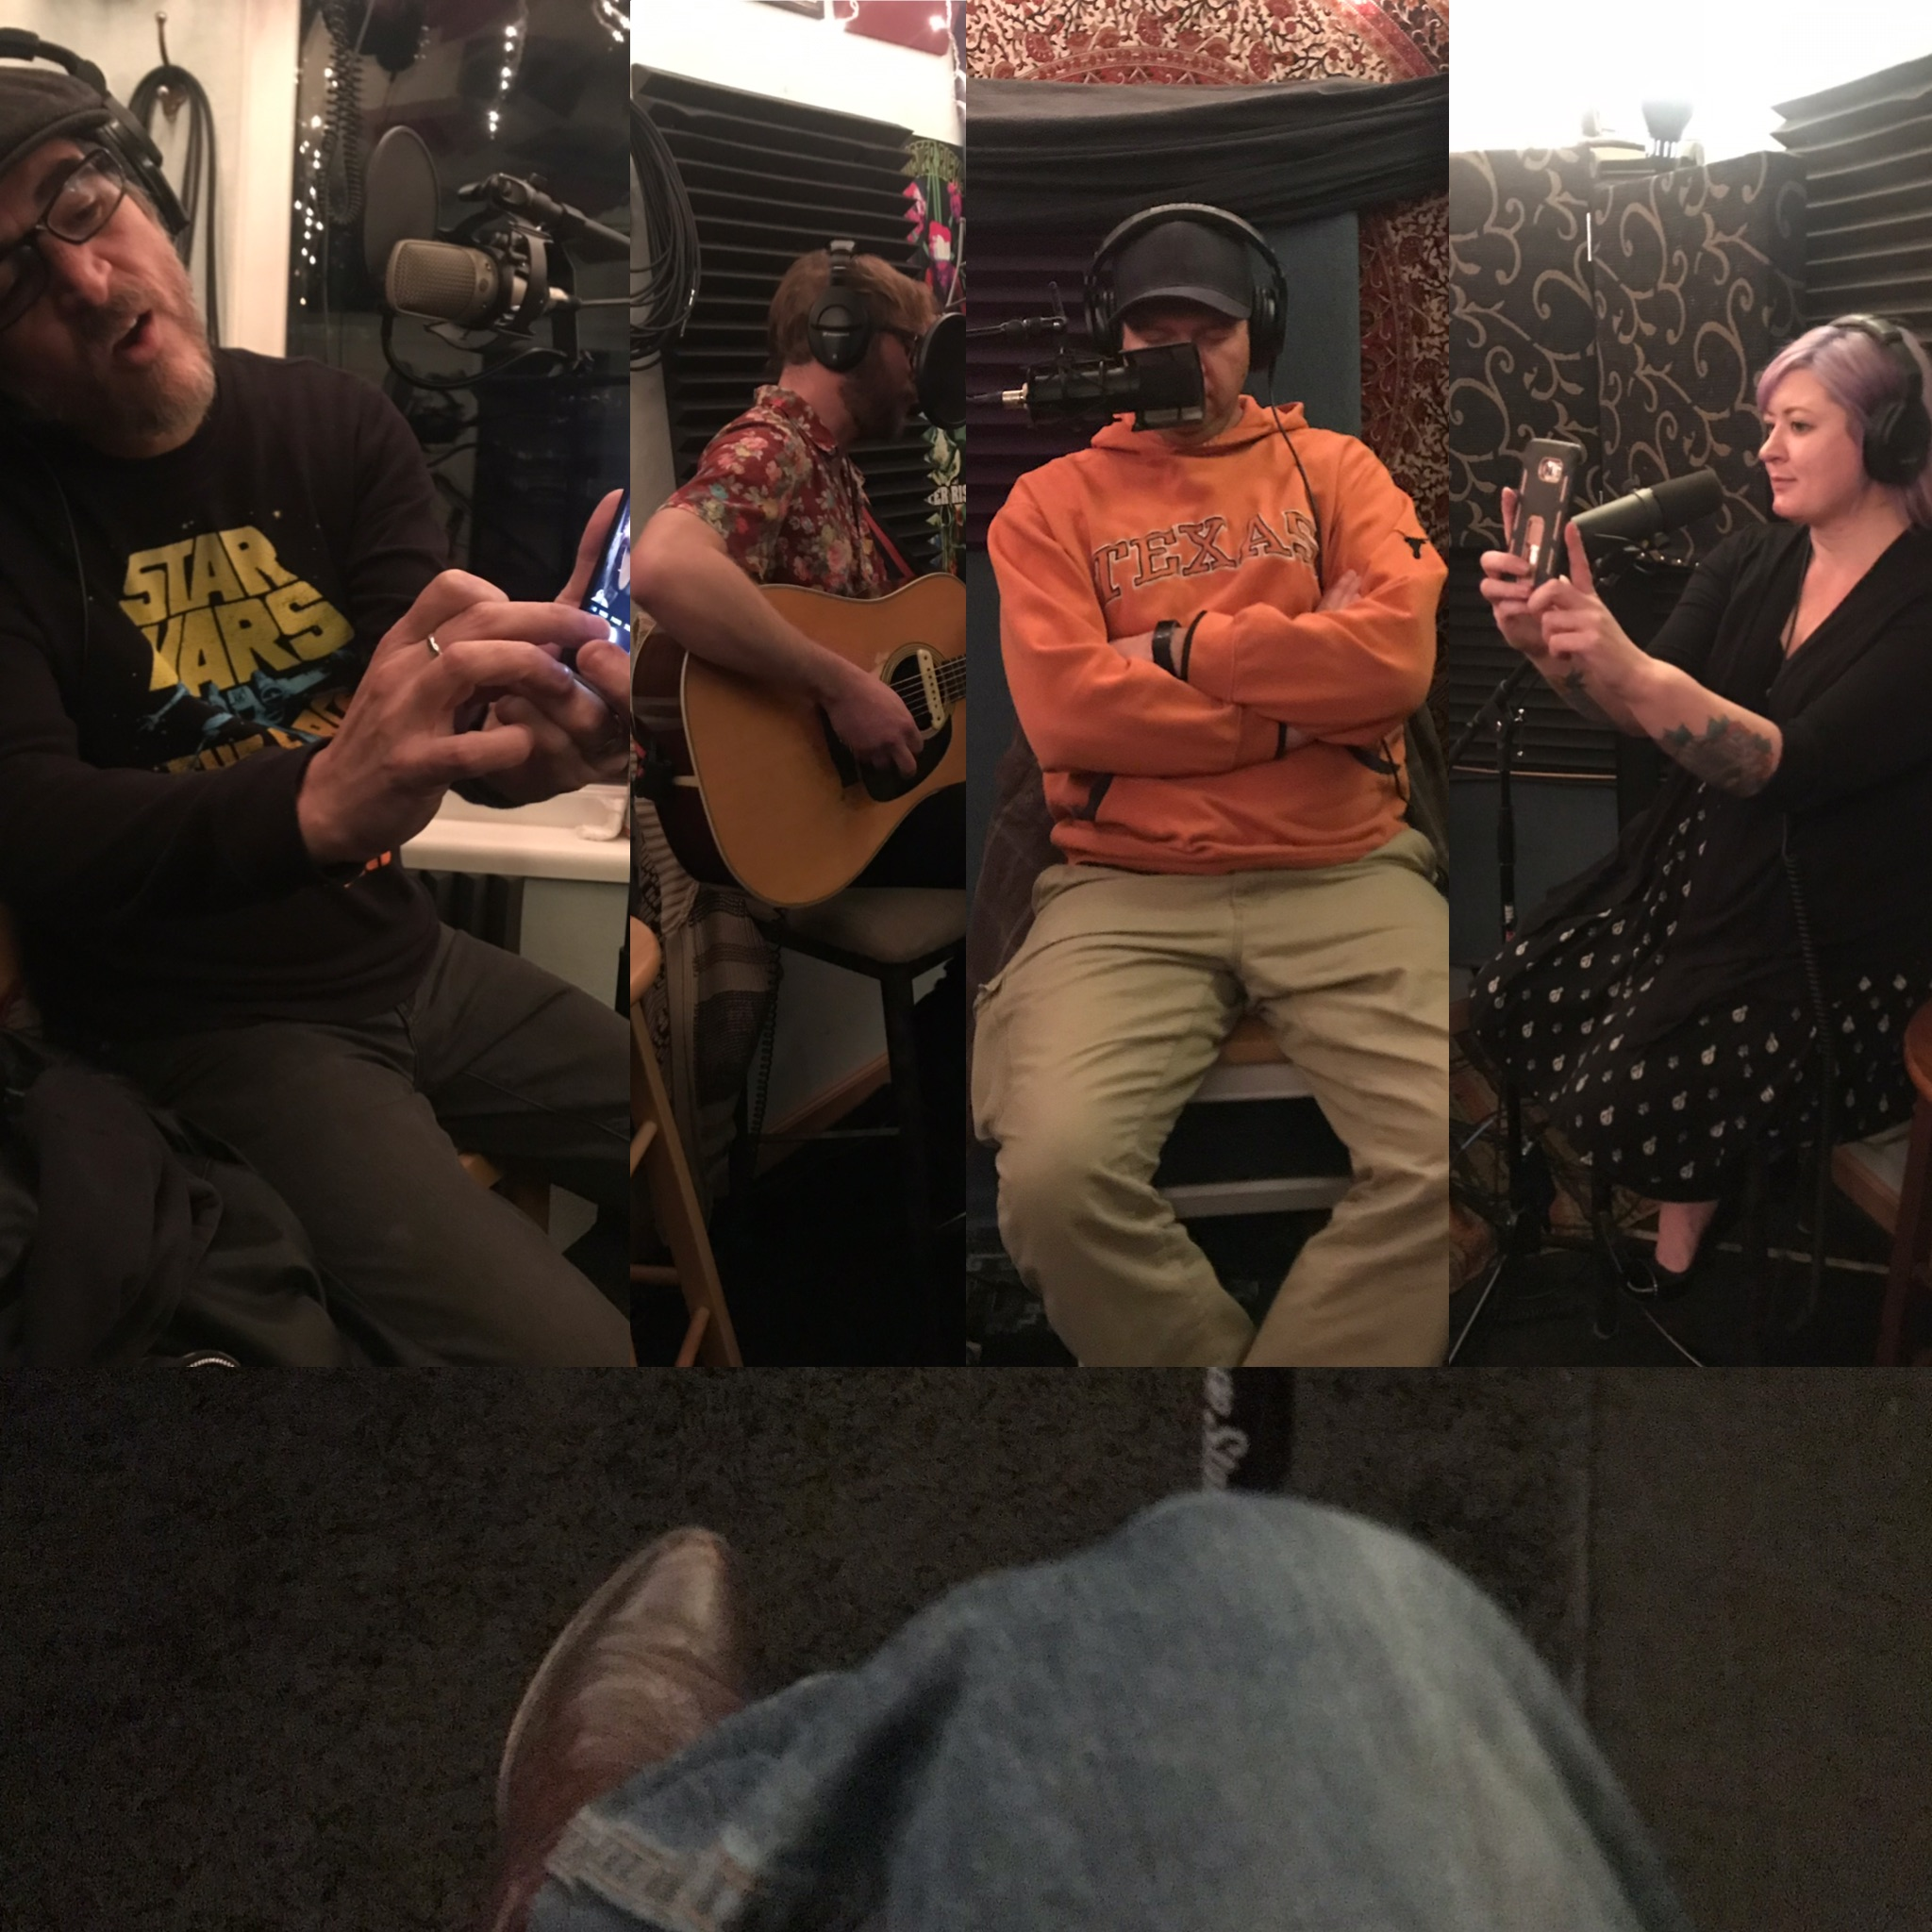 collage picture featuring (left to Right) Nick Ramirez taking a photo with his phone, Bryan jones playing guitar, Chewie with his eyes closed and Kim taking a video with her phone, underneath them al is a picture of Reverend ROry's Knee and cowboy boot